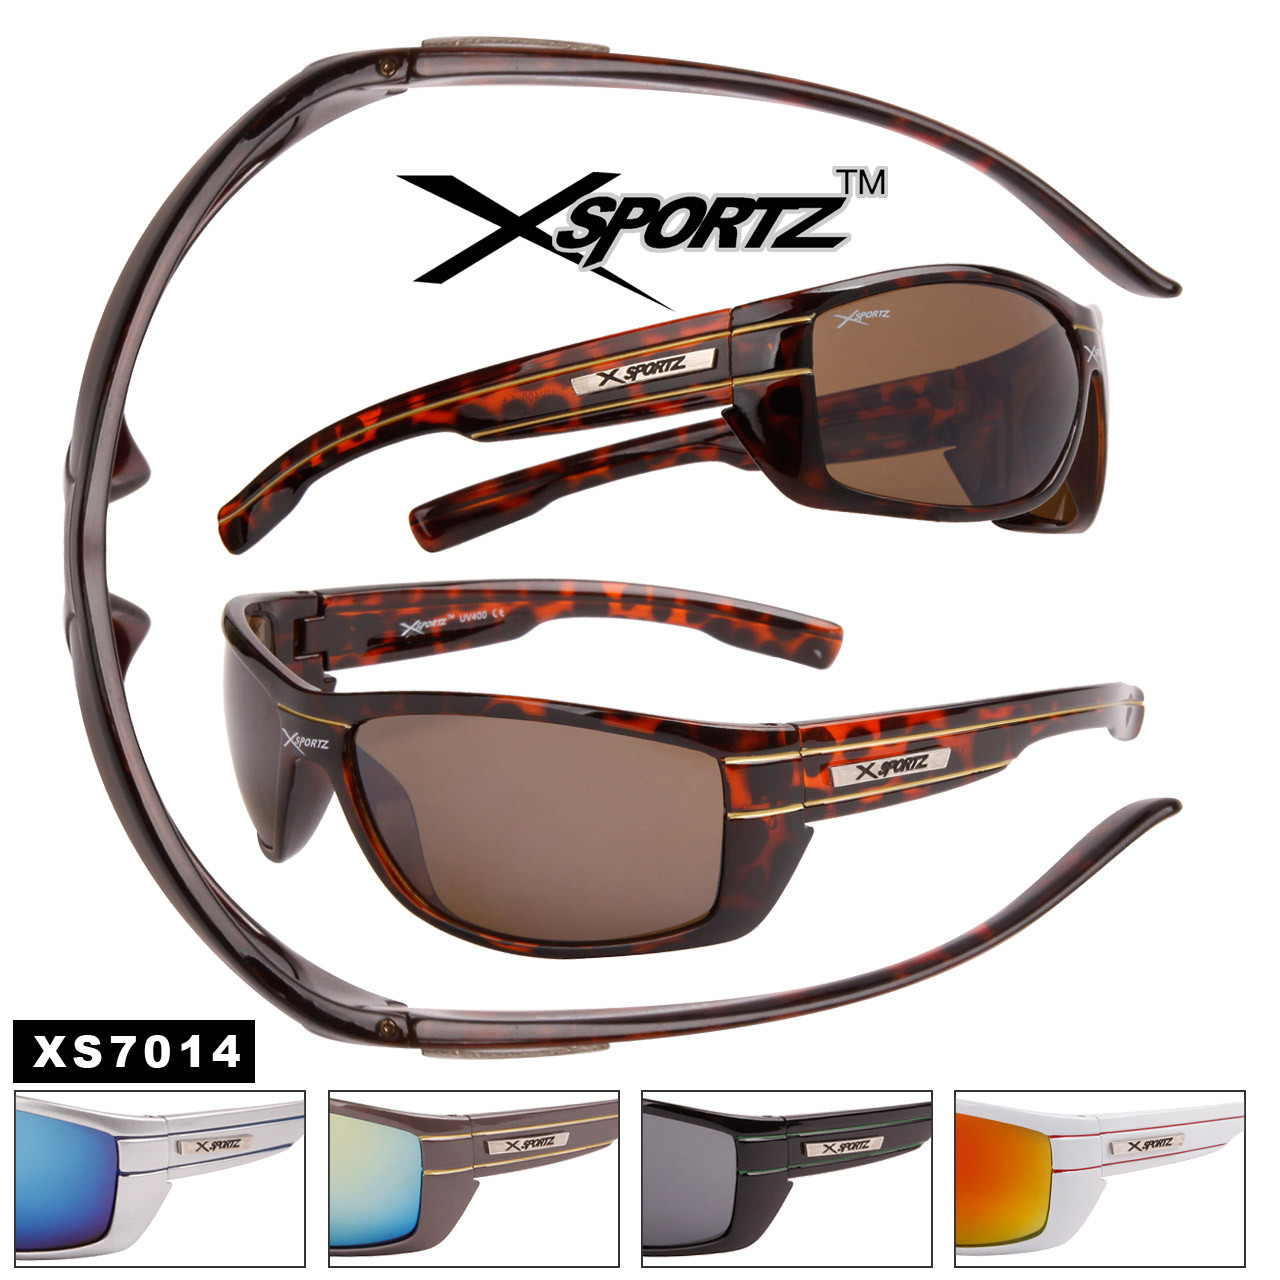 Xsportz™ Wholesale Sports Sunglasses - Style #XS7014 (Assorted Colors) (12 pcs.)